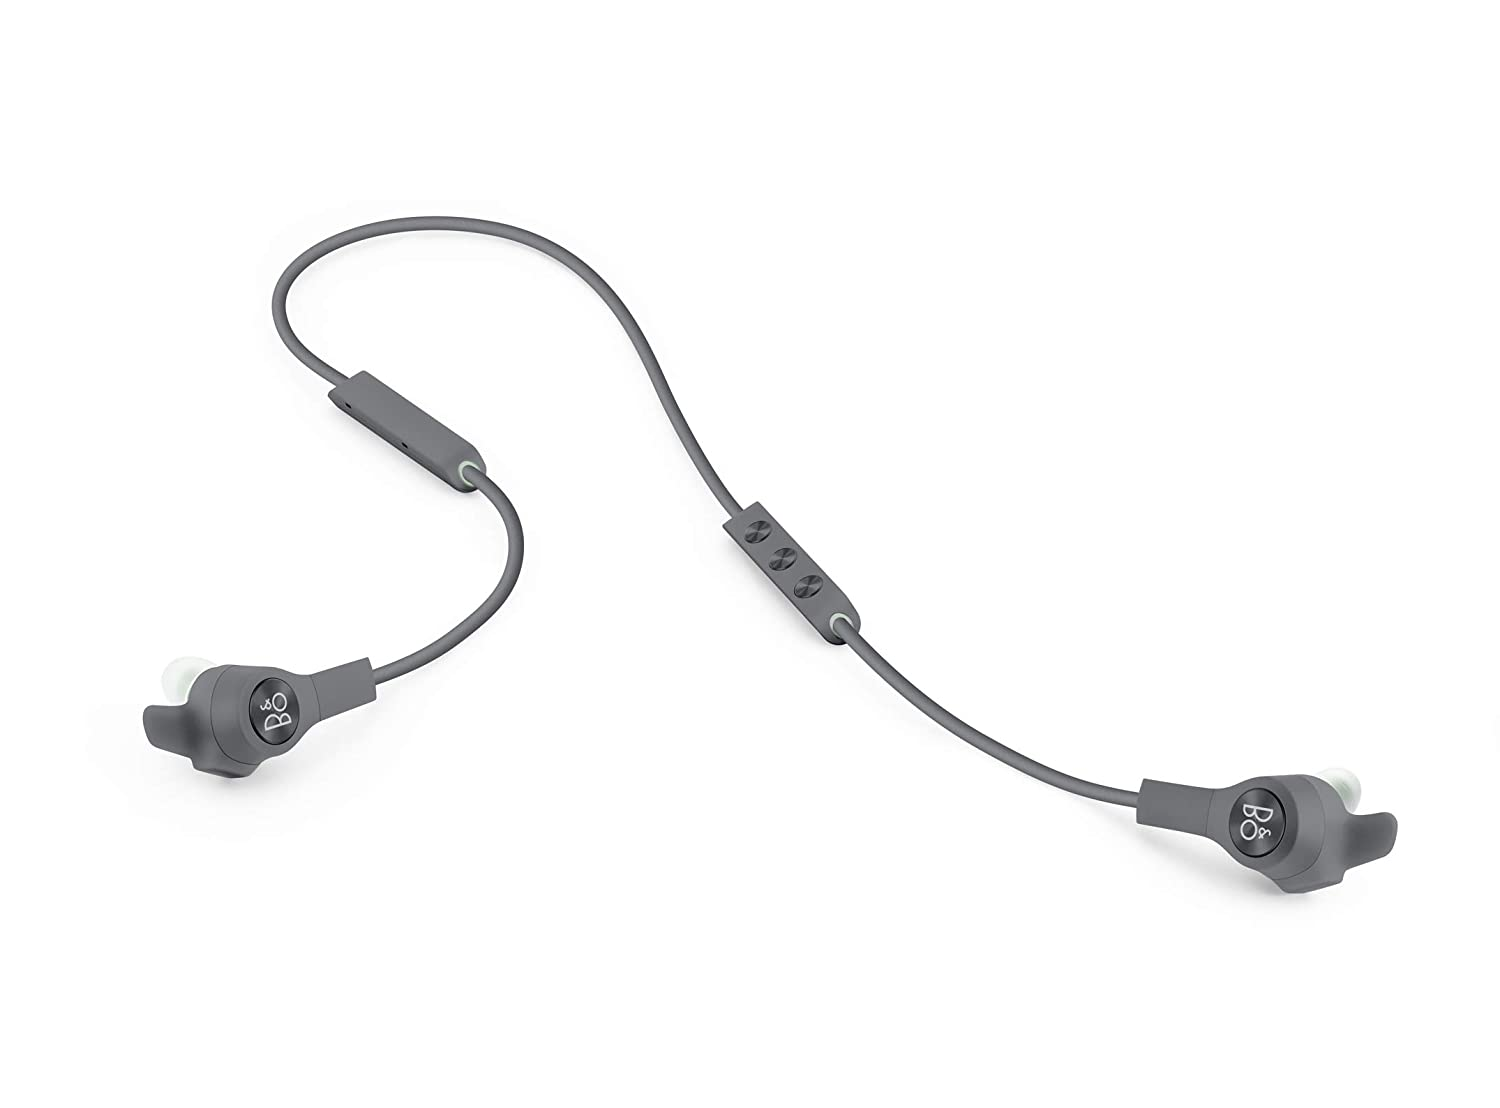 Bang Olufsen Beoplay E6 Motion in-Ear Wireless Earphones, Graphite, One Size – 1645309